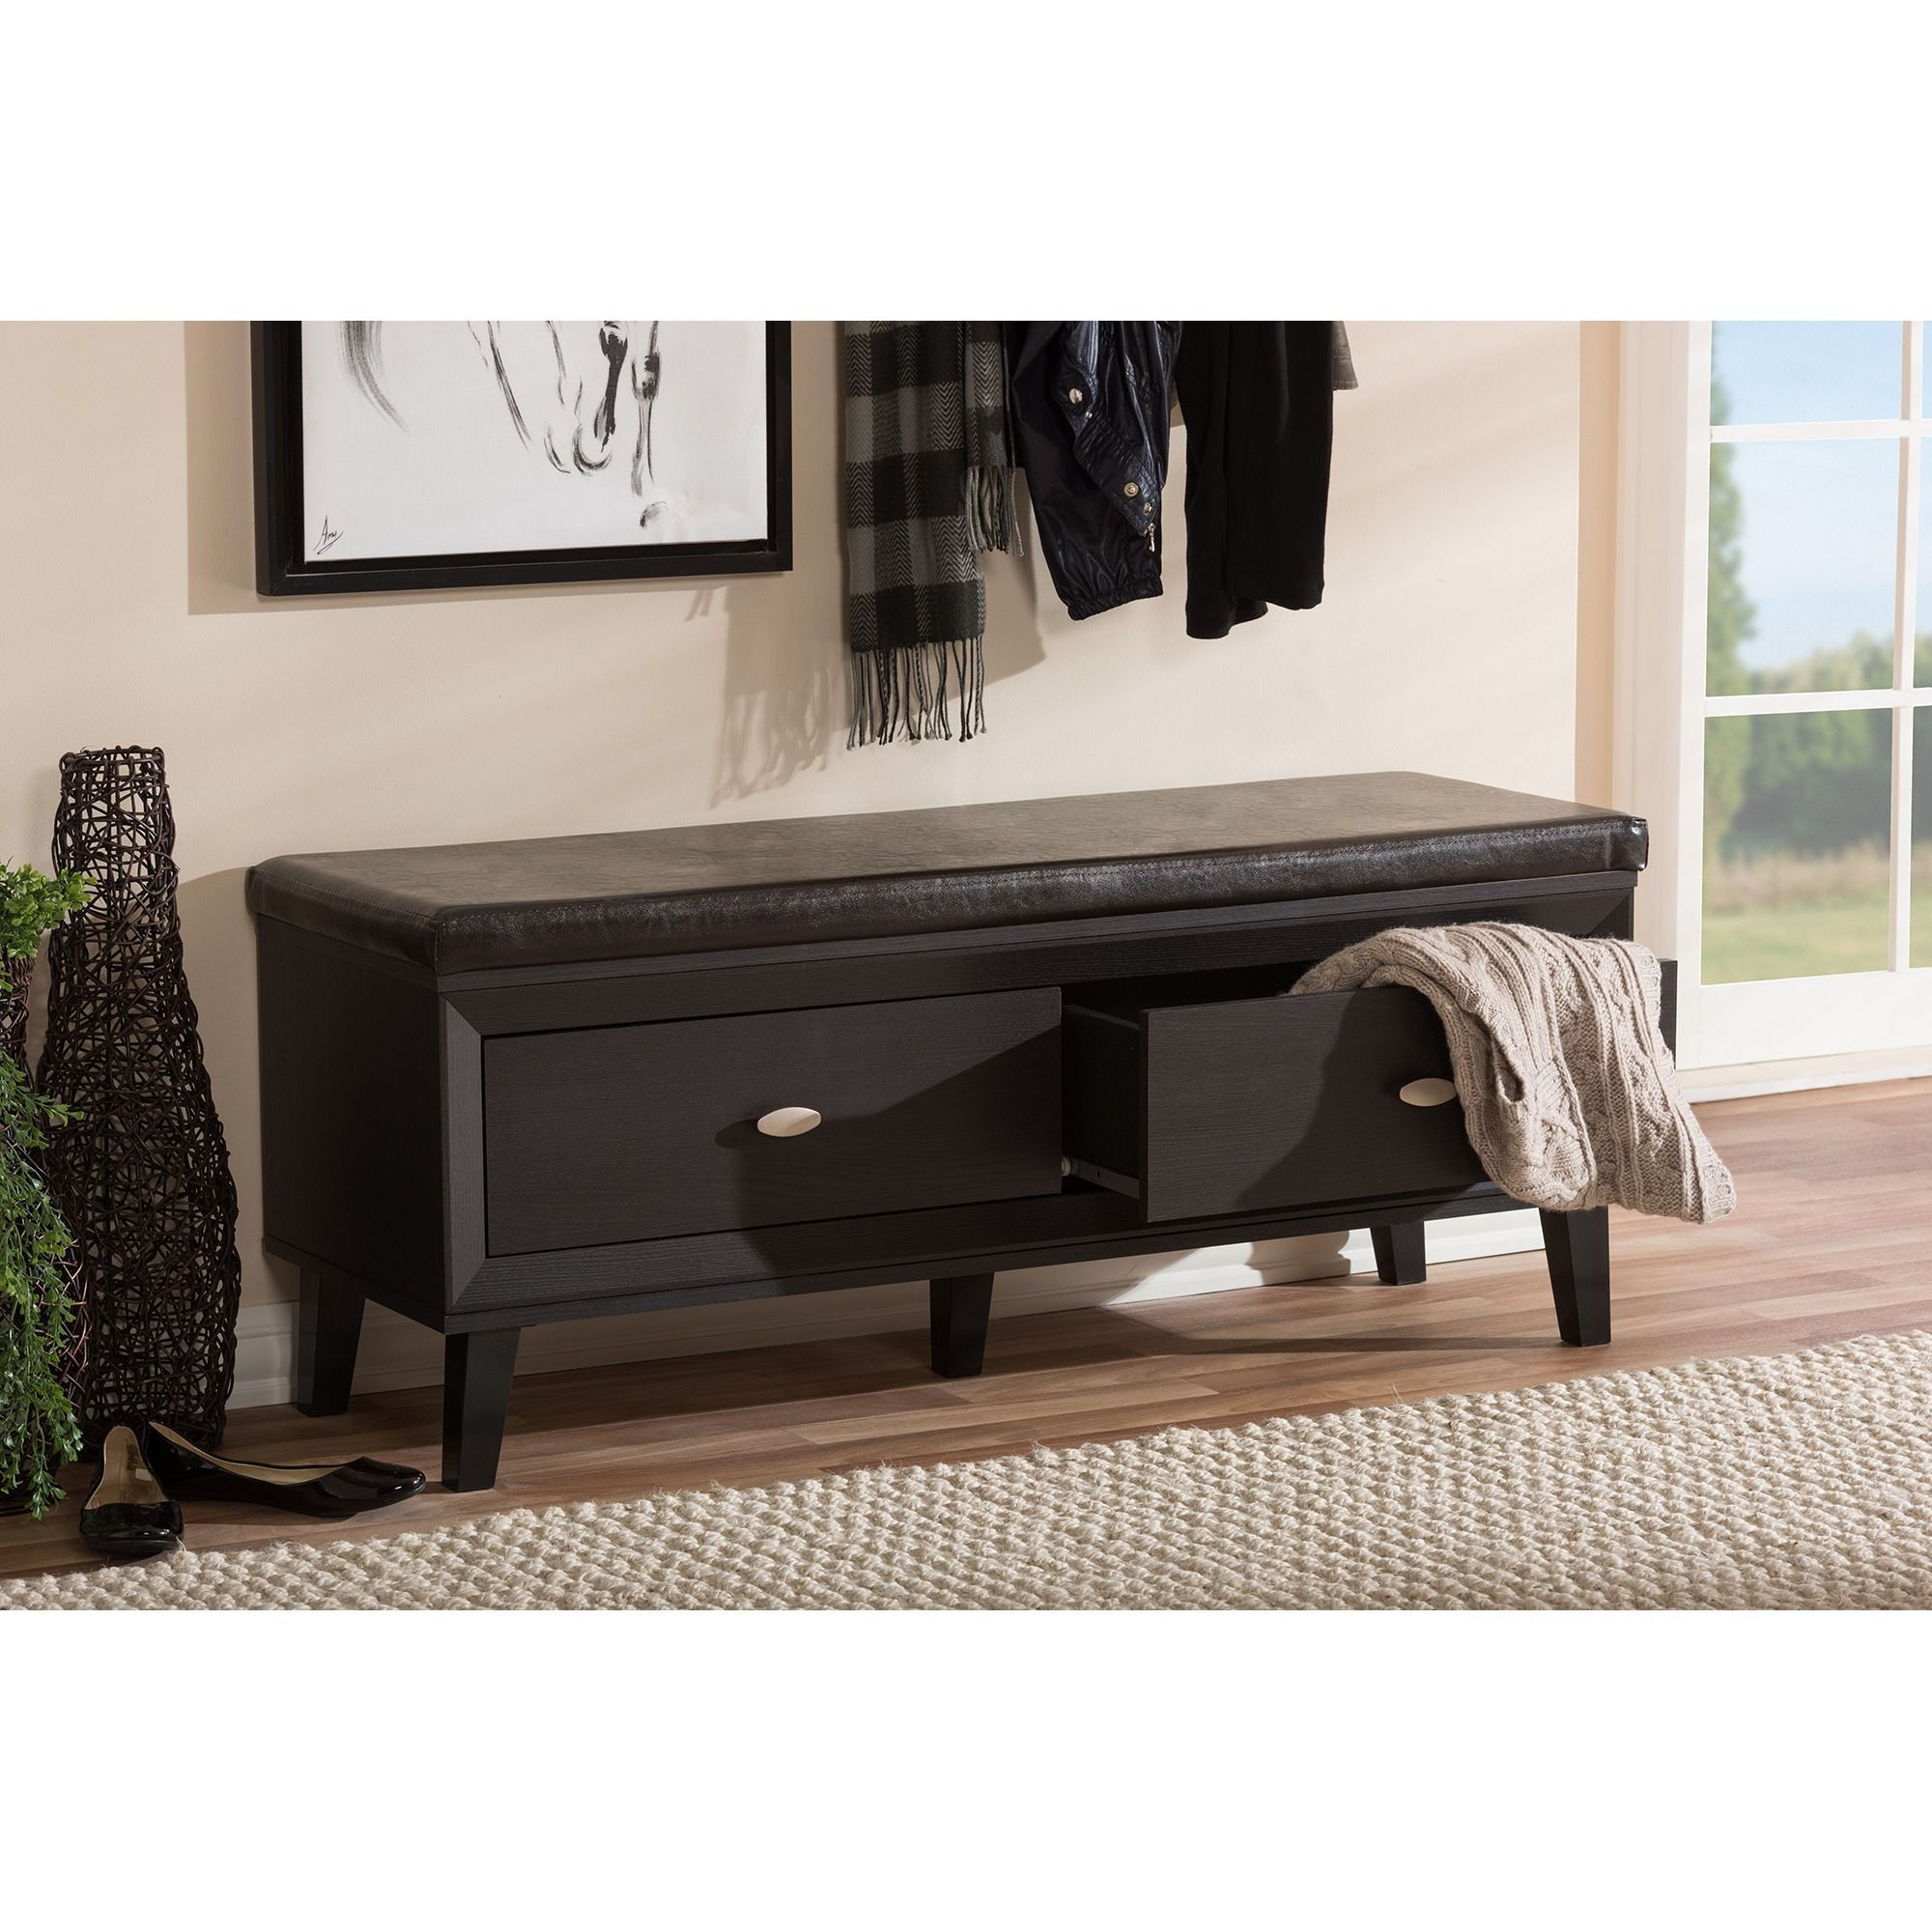 Elegant Wood Entry Bench with Storage